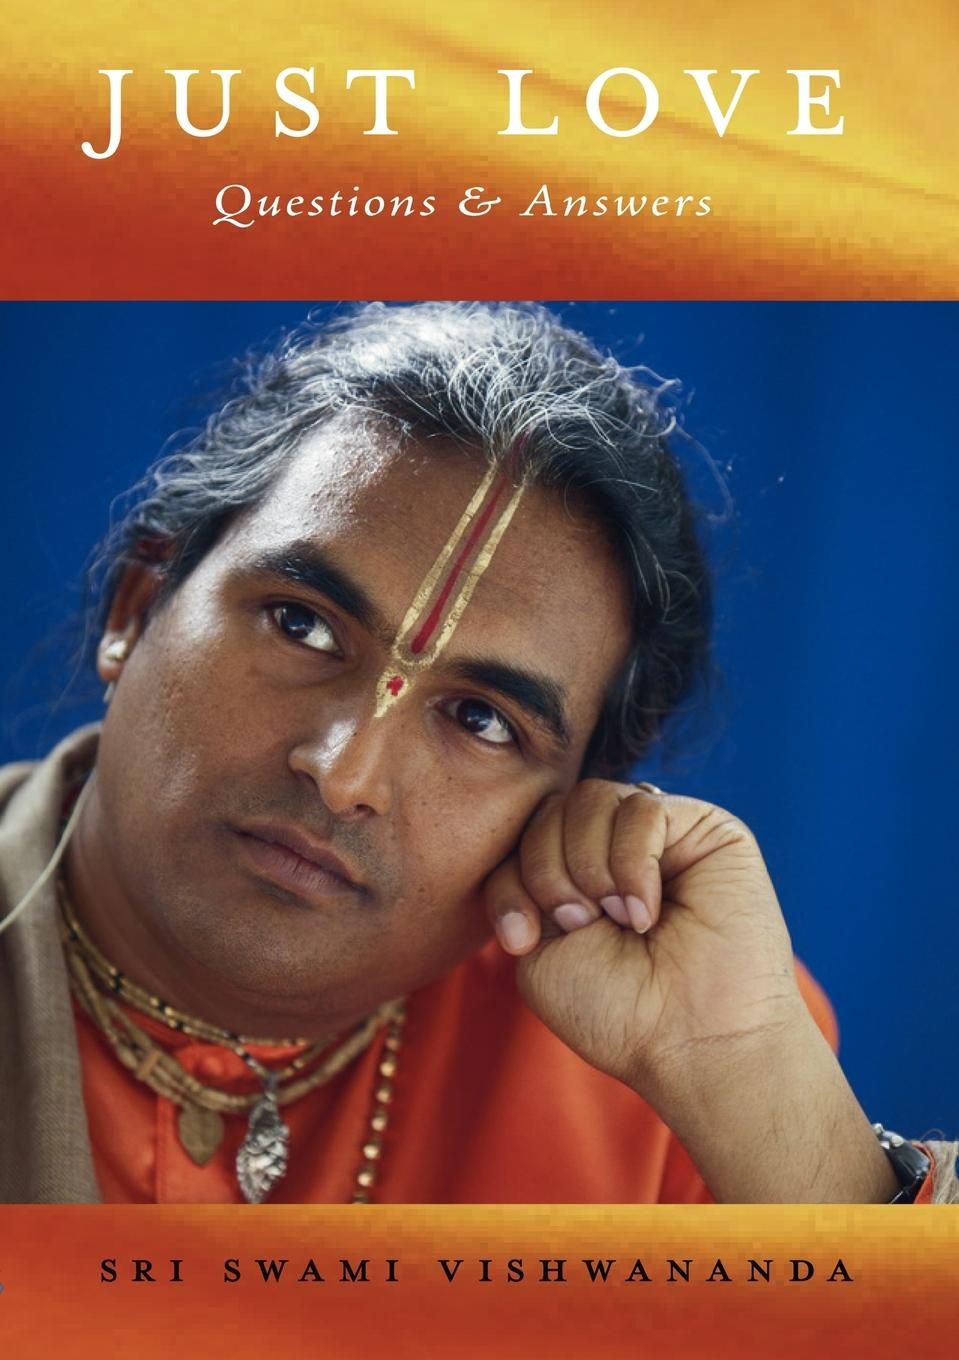 Sri Swami Vishwananda JUST LOVE, Questions . Answers 1 games [a2 b1] questions and answers